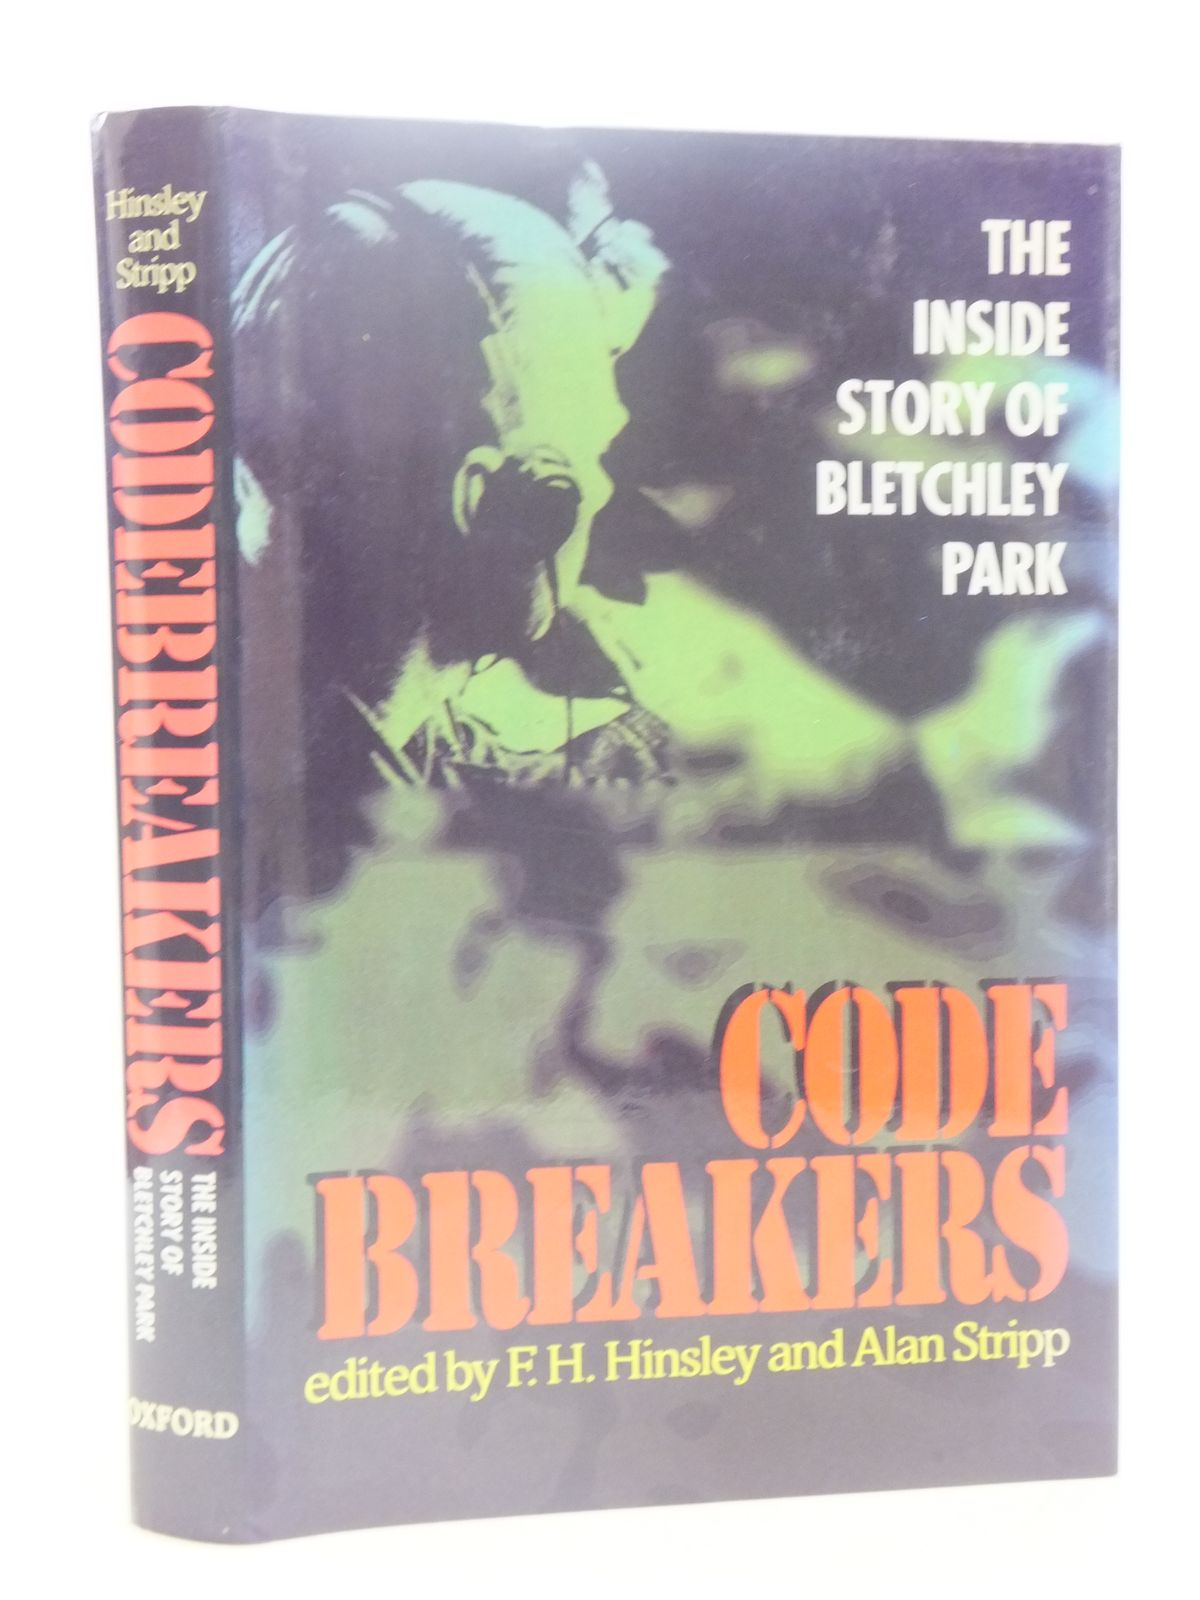 Photo of CODEBREAKERS THE INSIDE STORY OF BLETCHLEY PARK